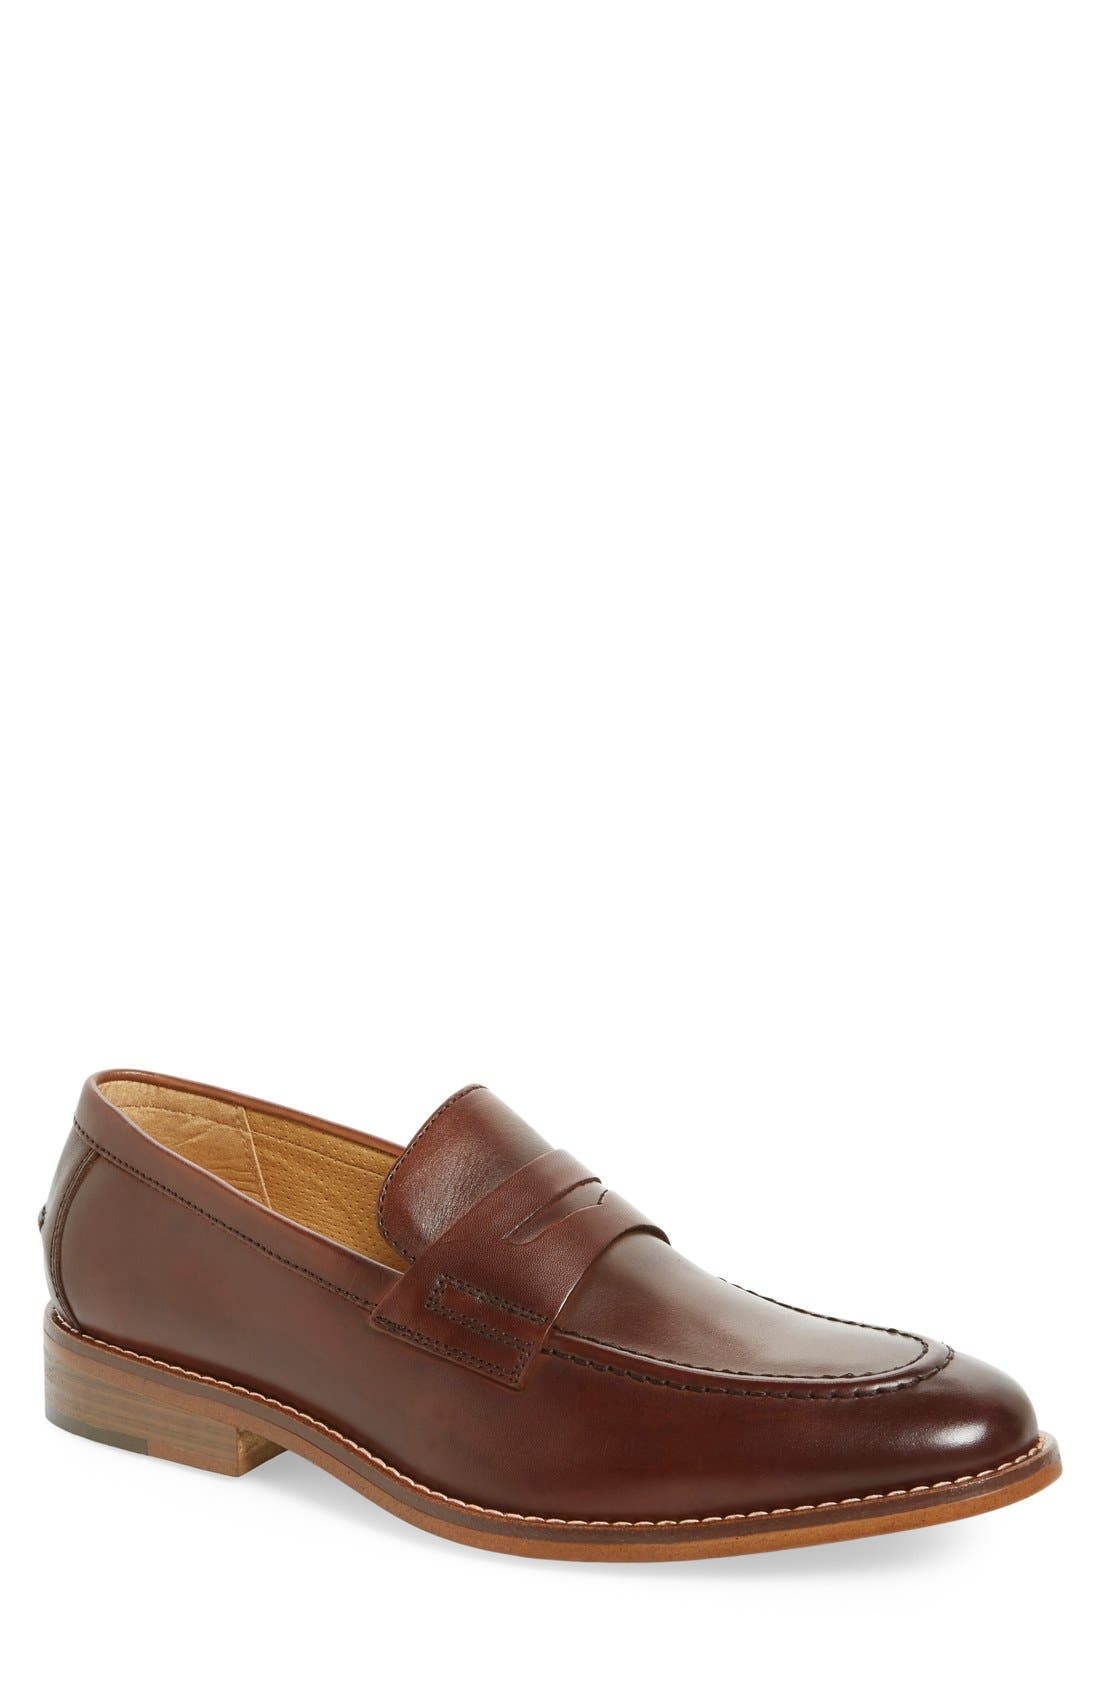 'Conner' Penny Loafer,                             Main thumbnail 1, color,                             201